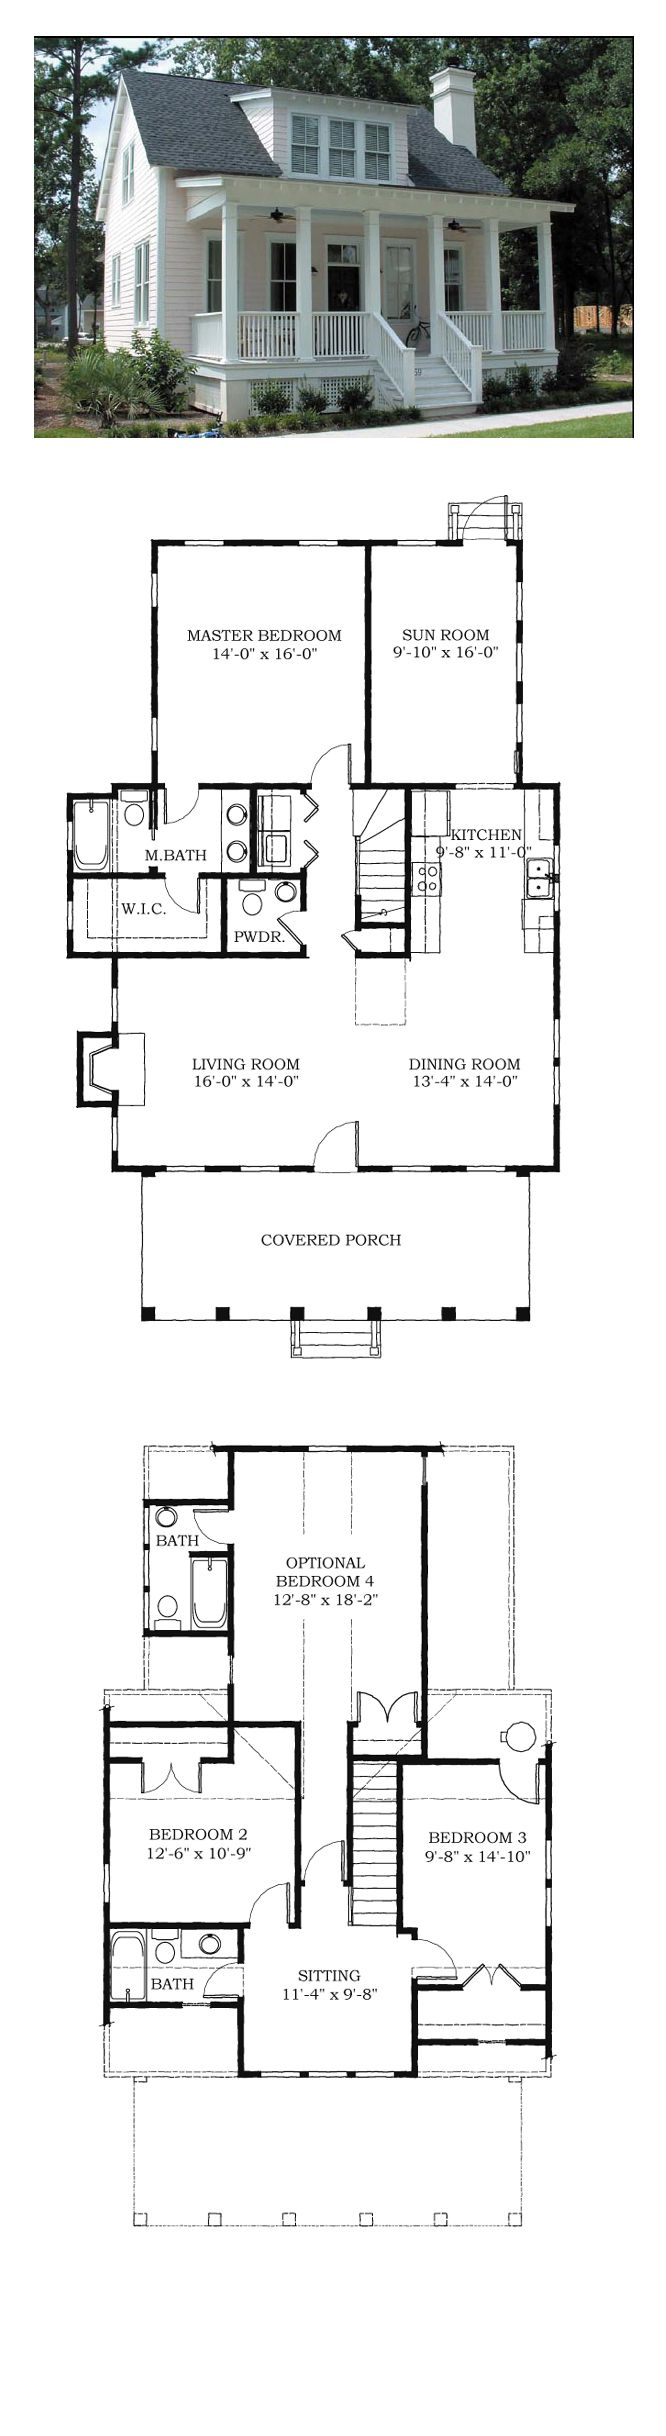 Awe Inspiring 17 Best Ideas About Small House Plans On Pinterest Small House Inspirational Interior Design Netriciaus